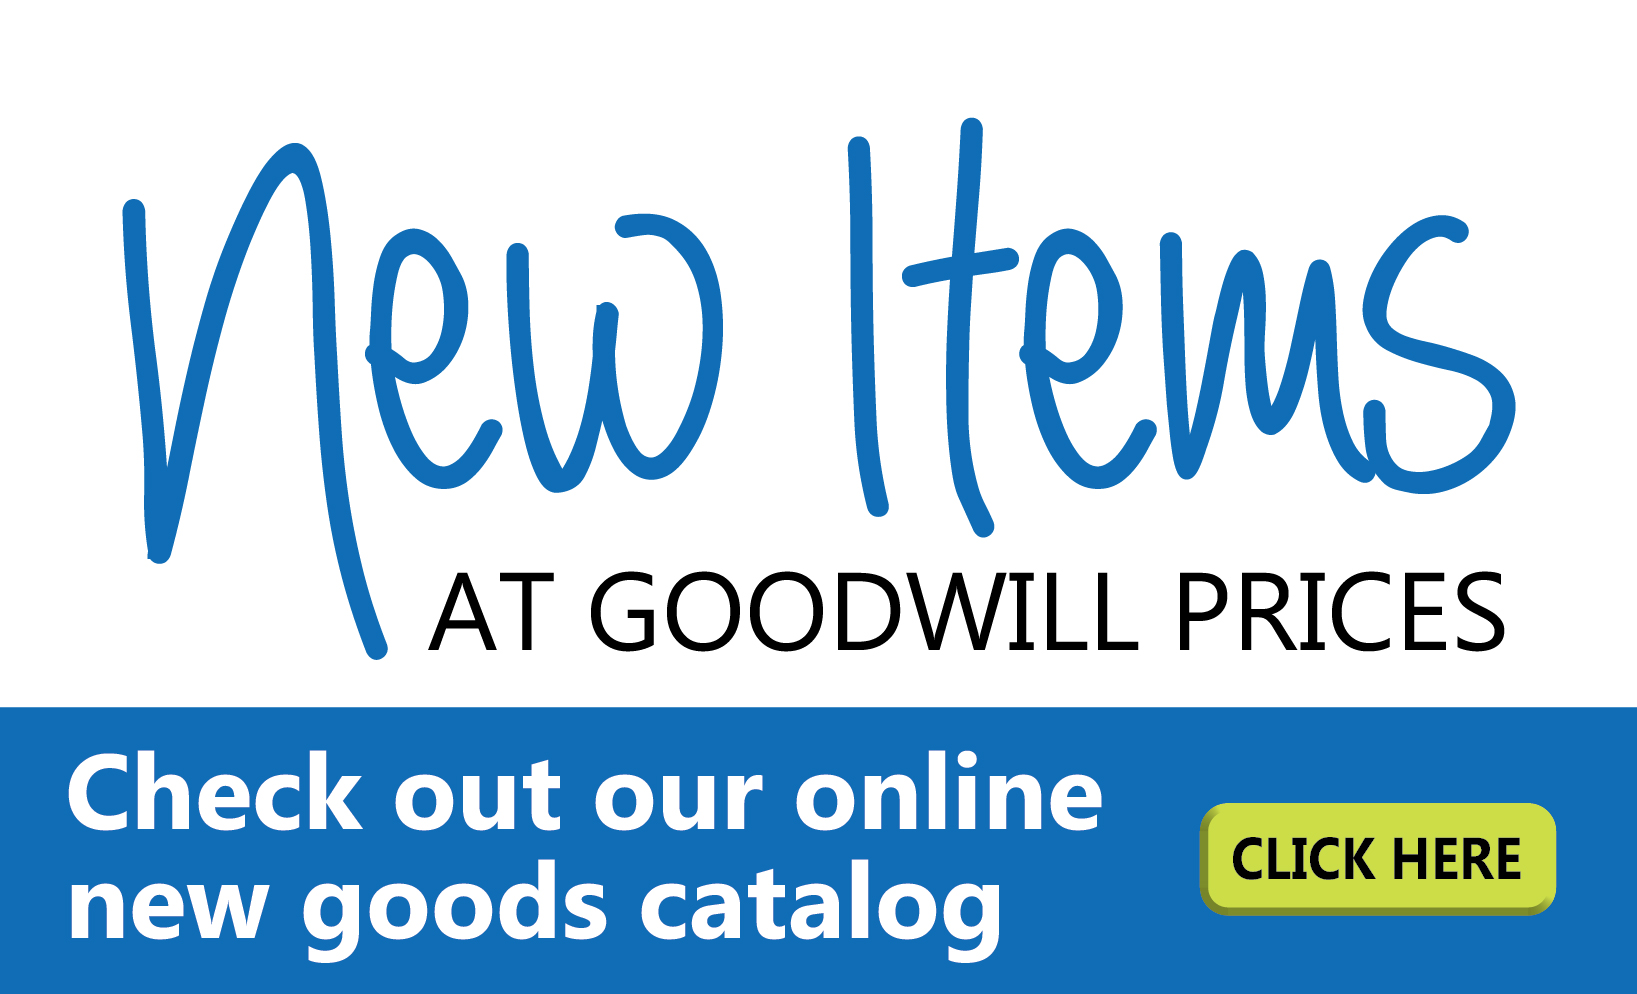 Goodwill industries of central illinois shopgoodwill 1betcityfo Gallery